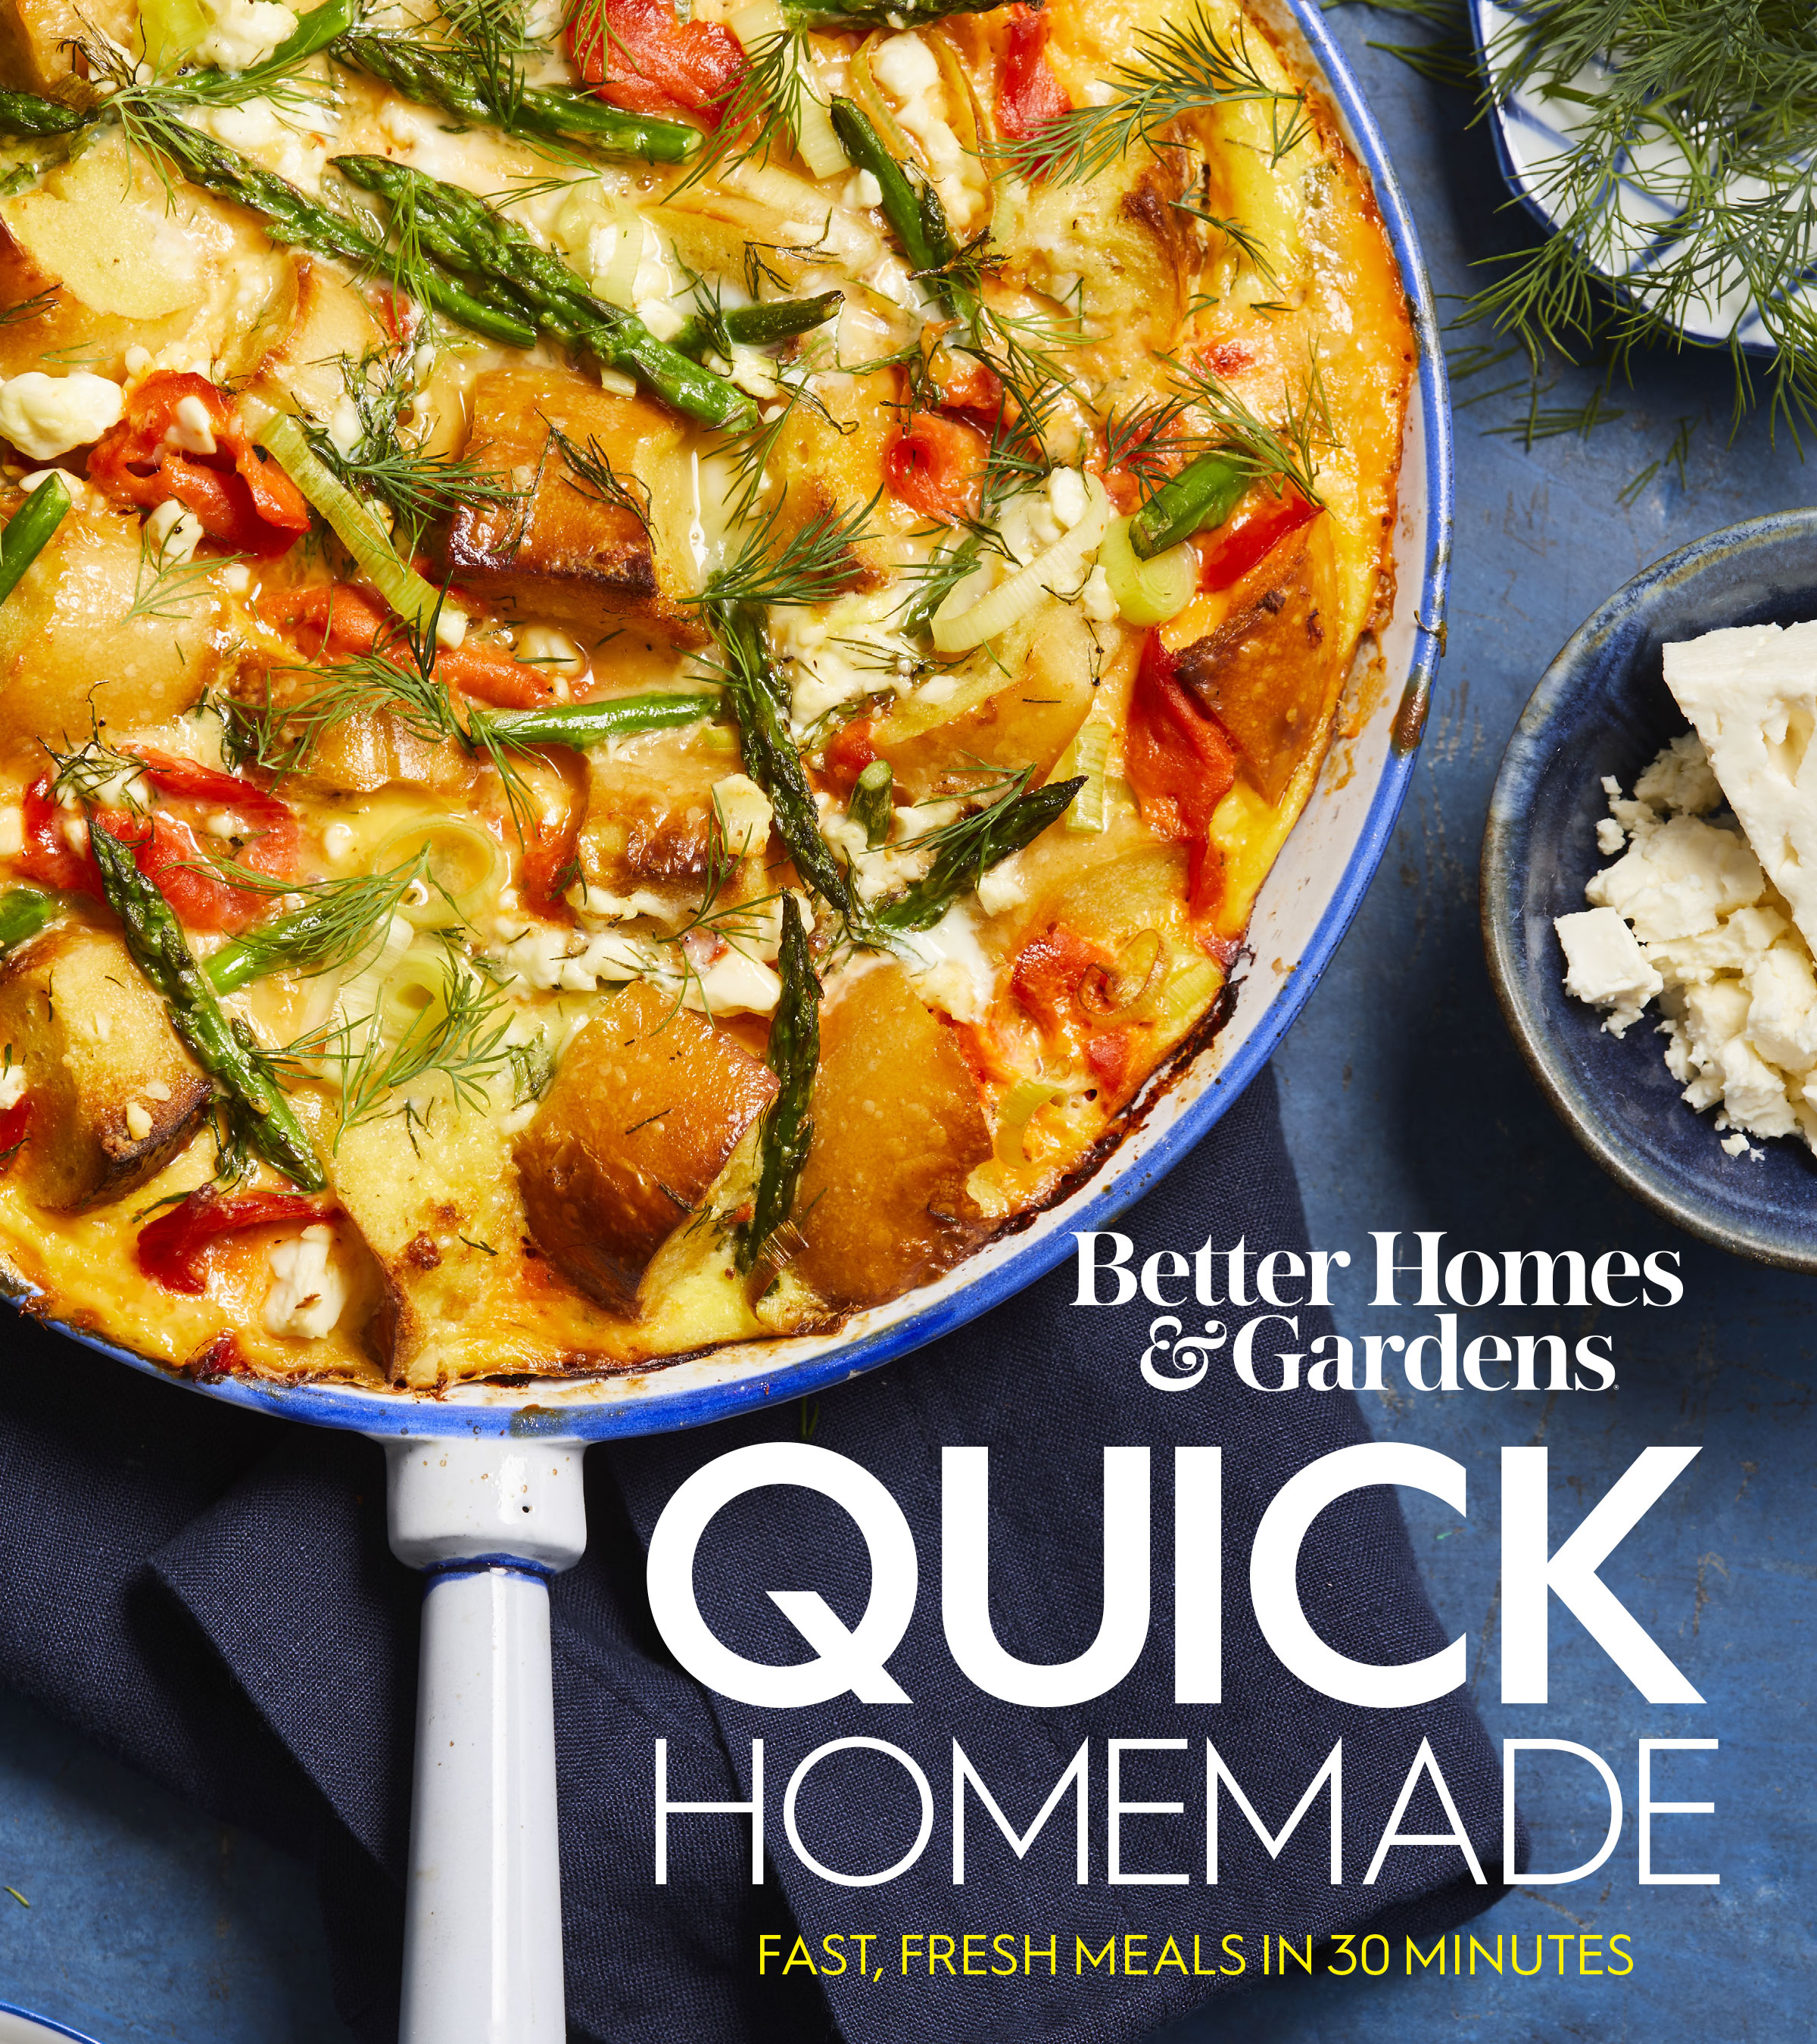 Better Homes and Gardens Quick Homemade Fast, Fresh Meals in 30 Minutes